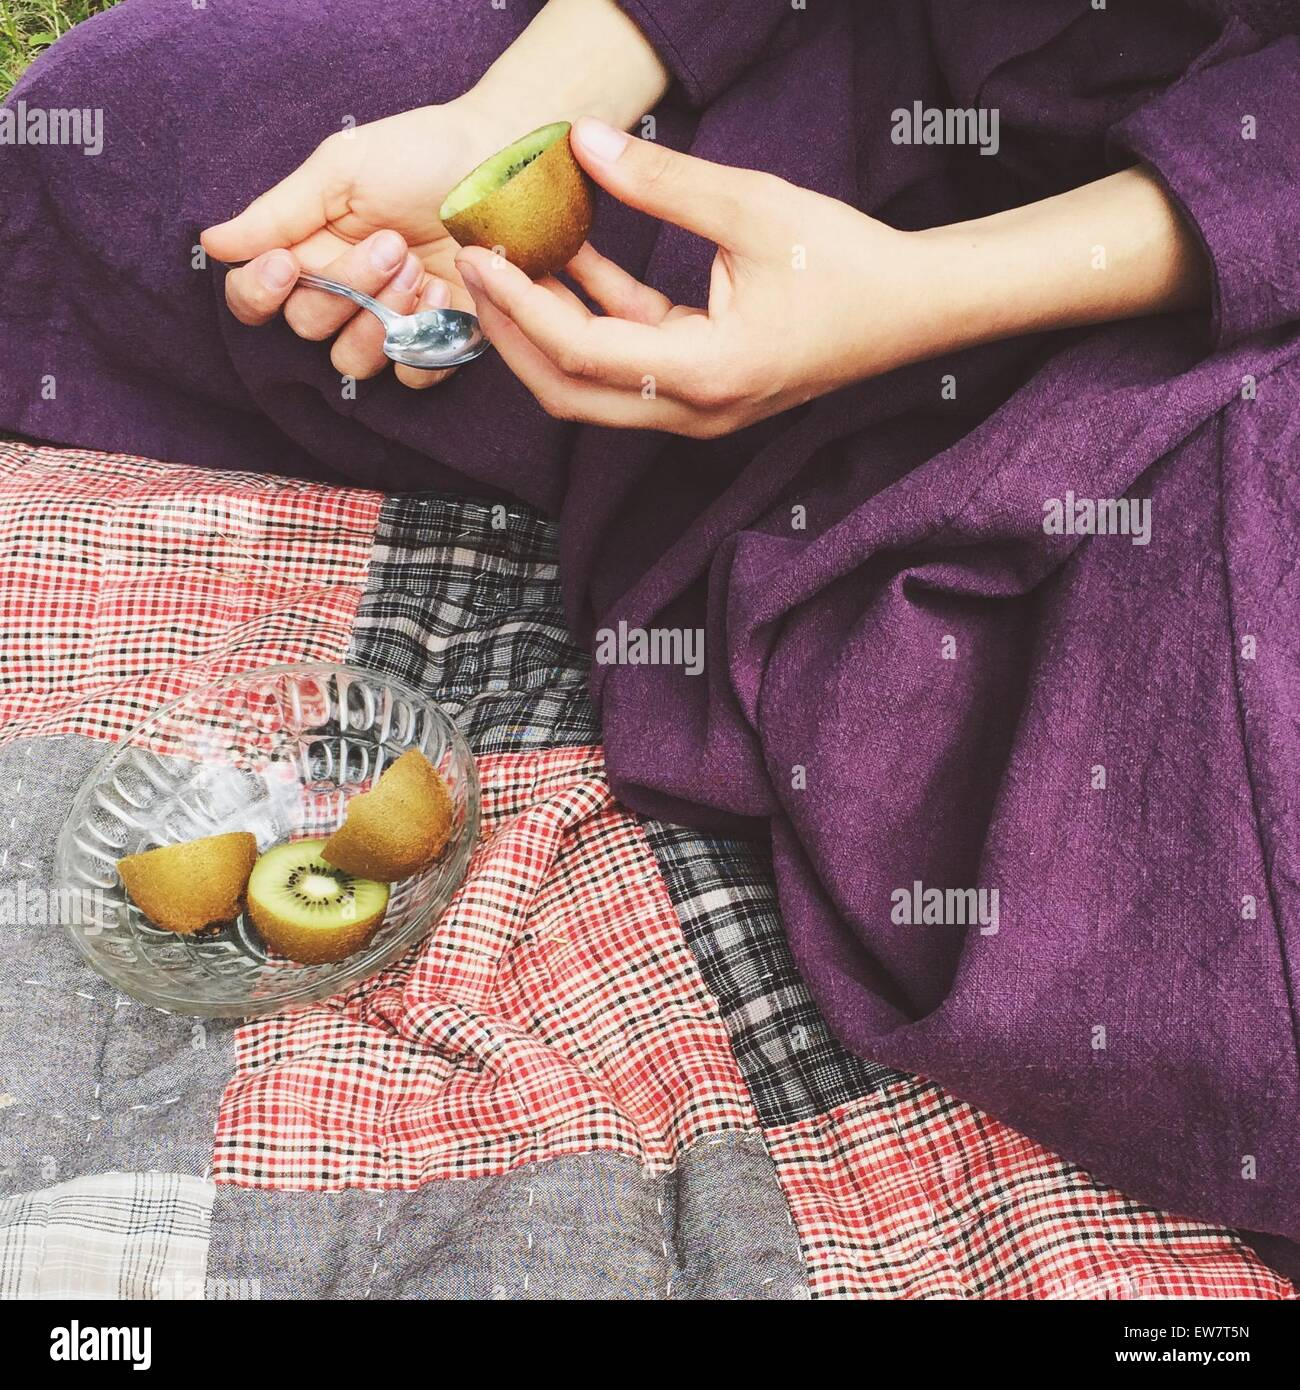 Close-up of a woman eating kiwi Photo Stock